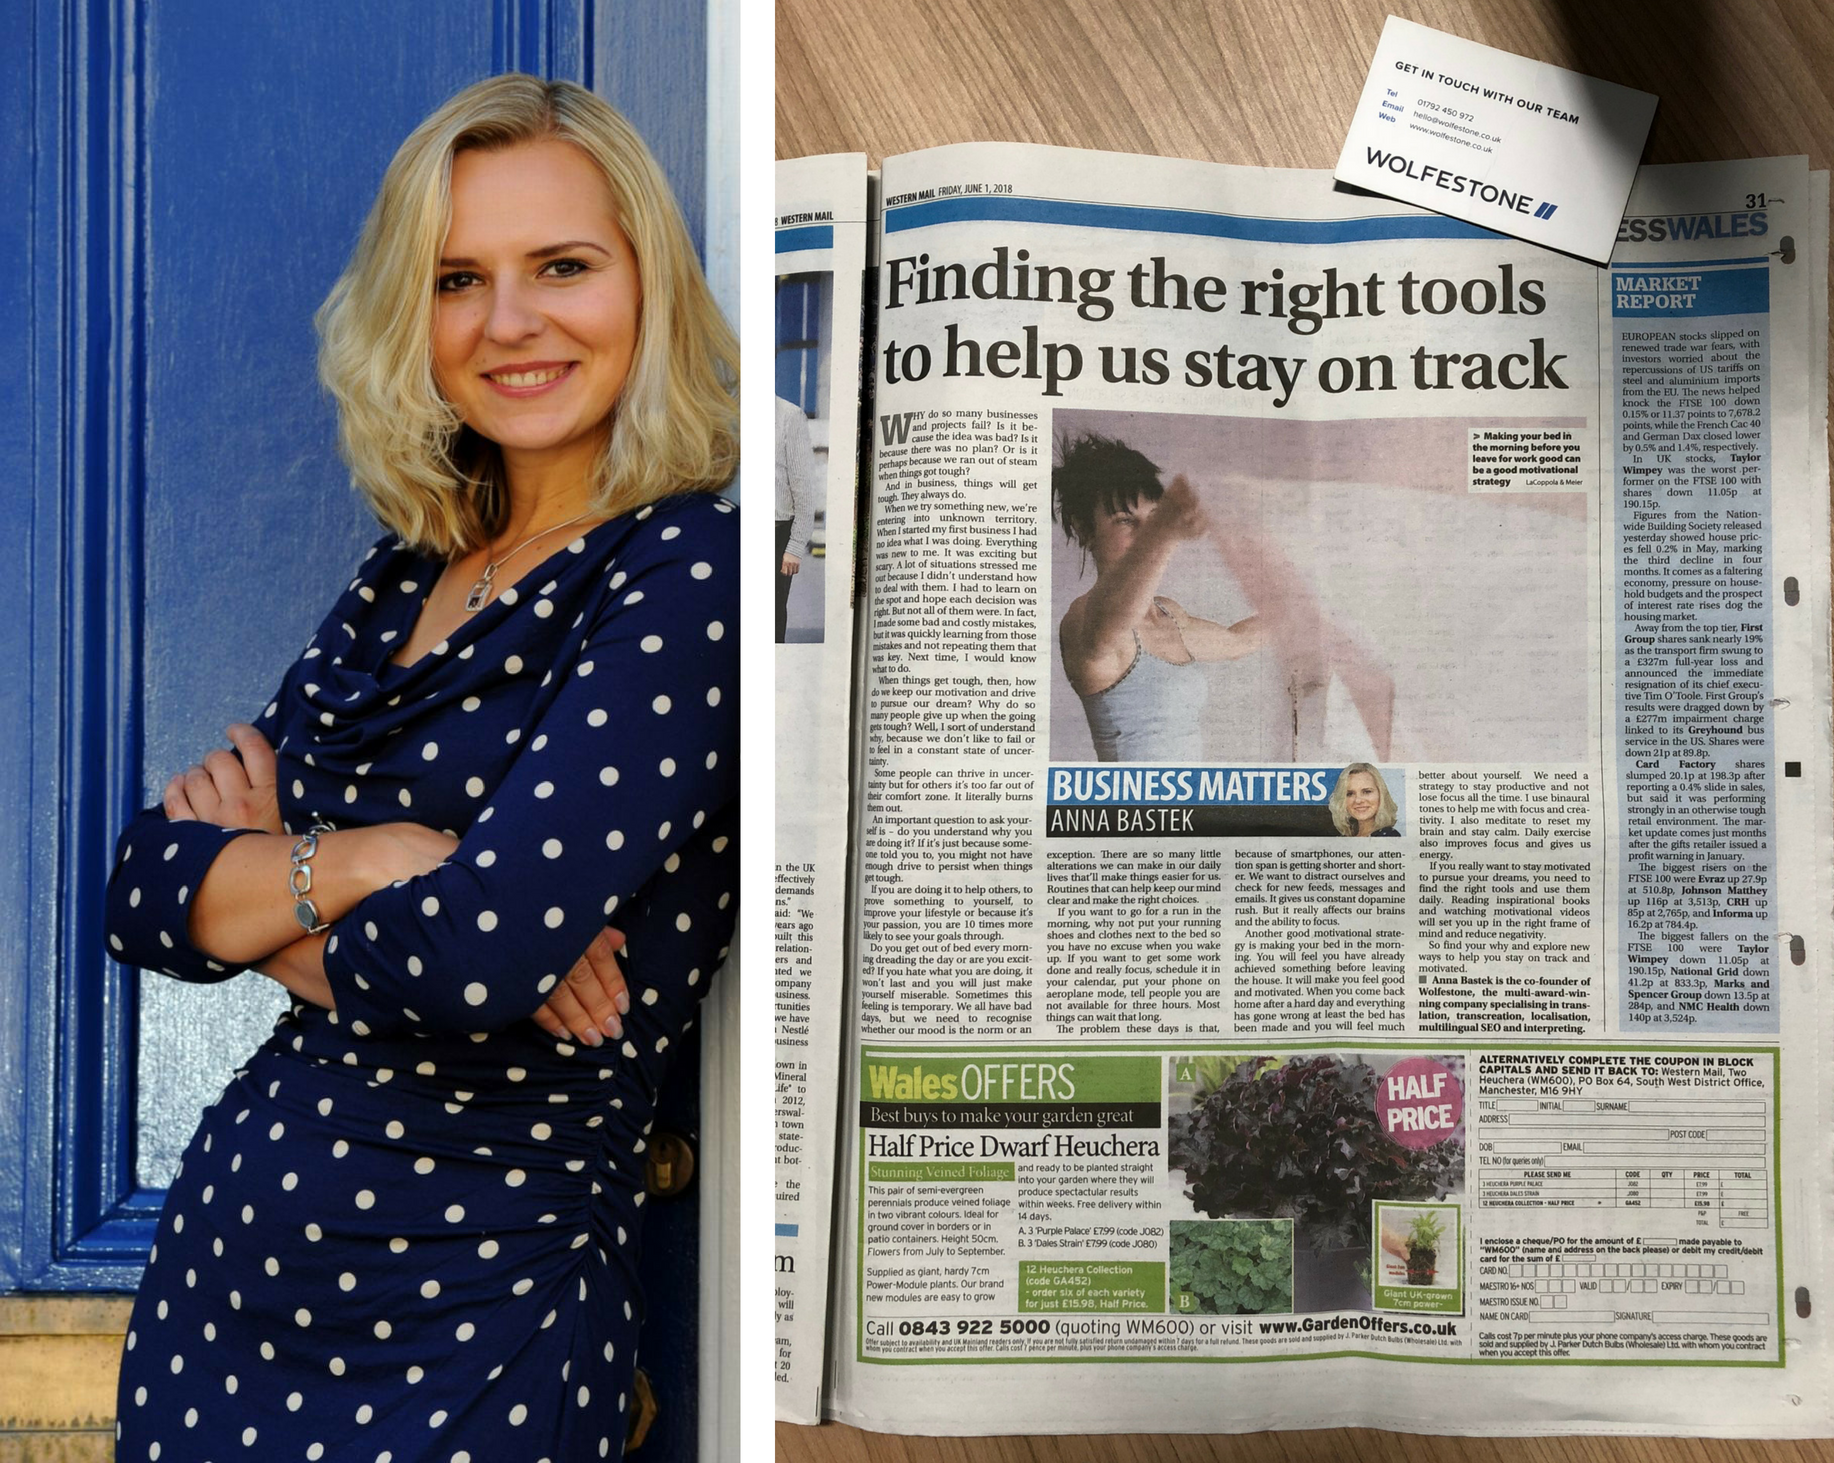 Image split into two parts. On the left is Anna Bastek, writer of the column. On the right-hand side is a picture of the article as it appeared in the Western Mail.